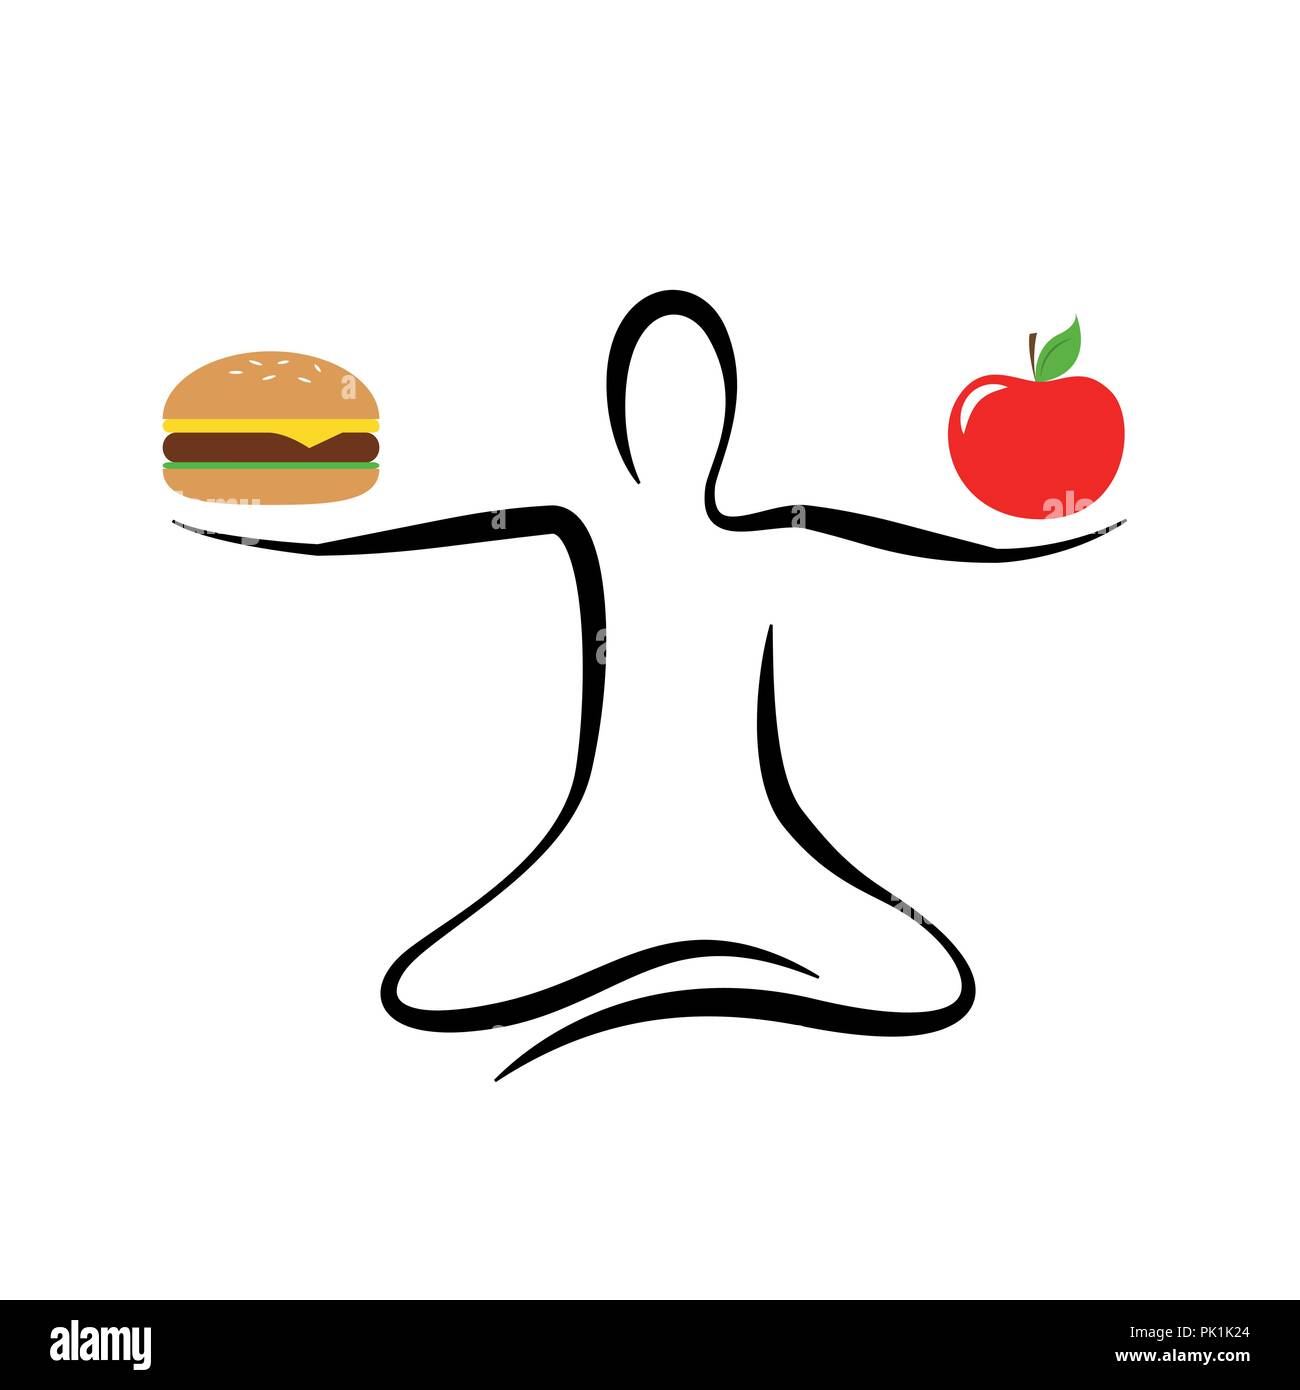 healthy apple and unhealthy fast food yoga pose vector illustration EPS10 - Stock Vector